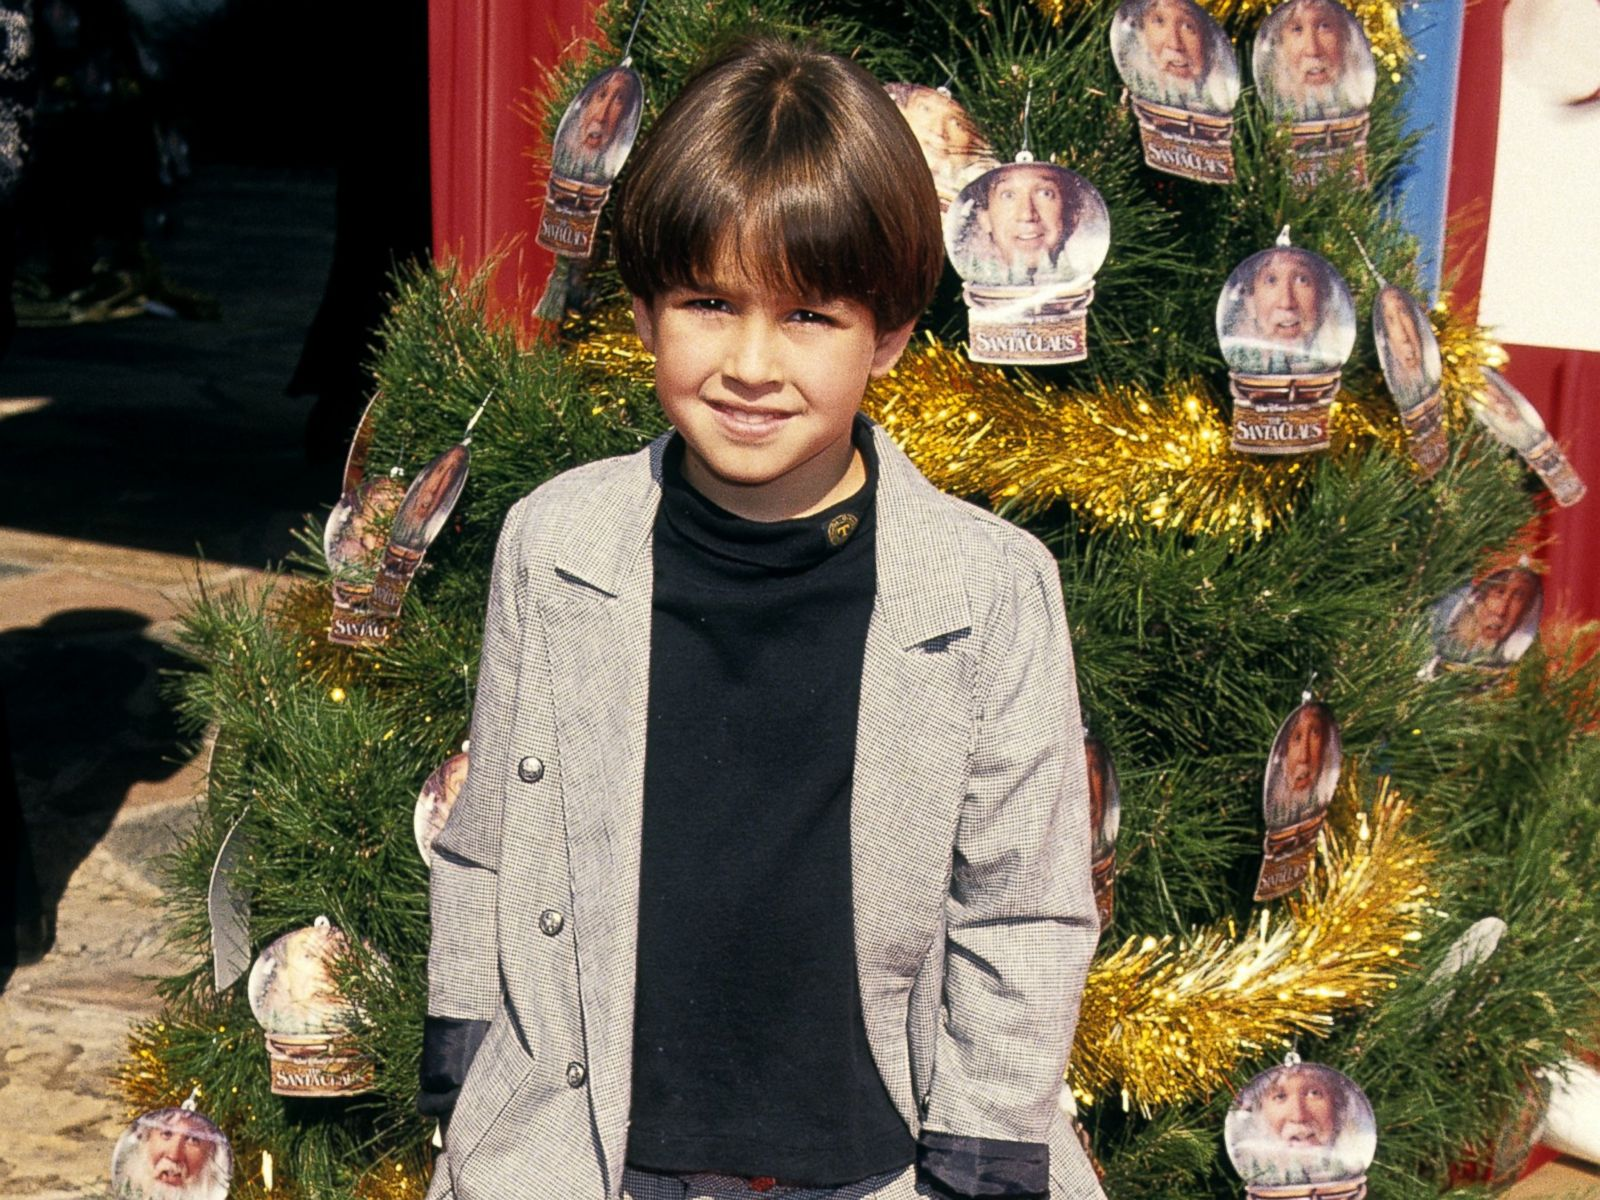 Lil Ron Ron Christmas.The Santa Clause Star Eric Lloyd Where He Is Now Abc News